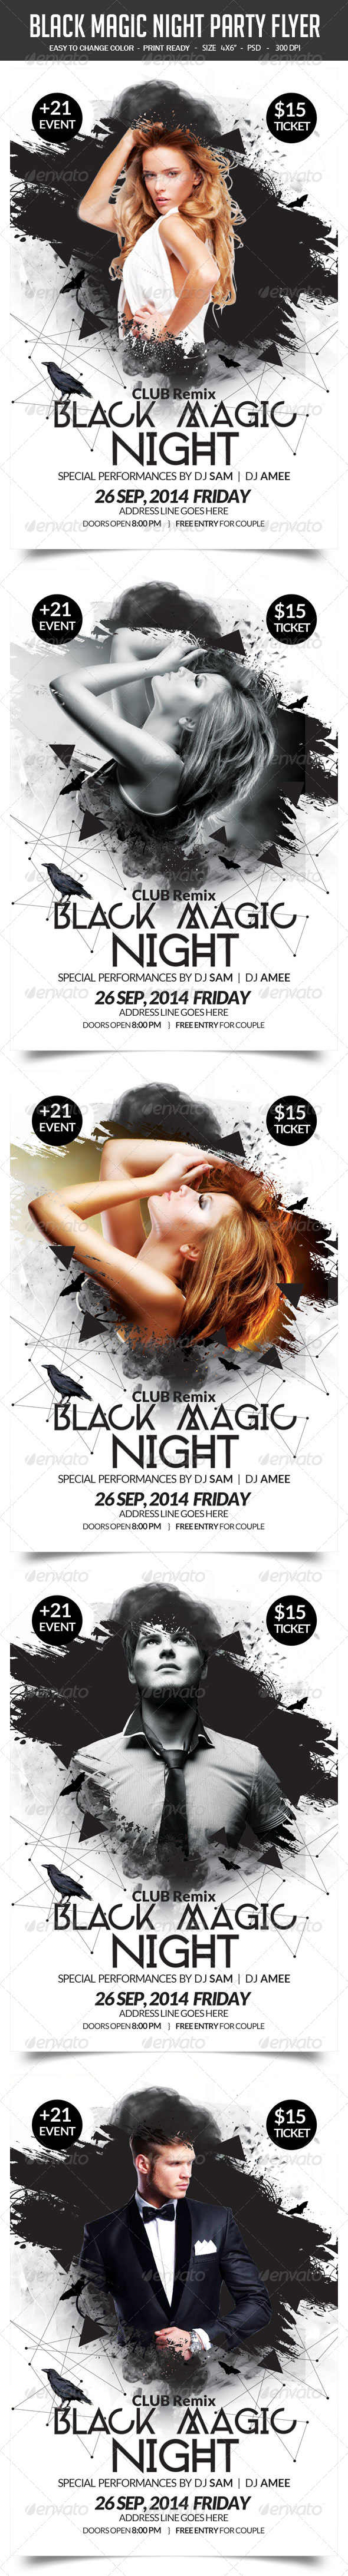 GraphicRiver Black Magic Night Party Flyer 8759886